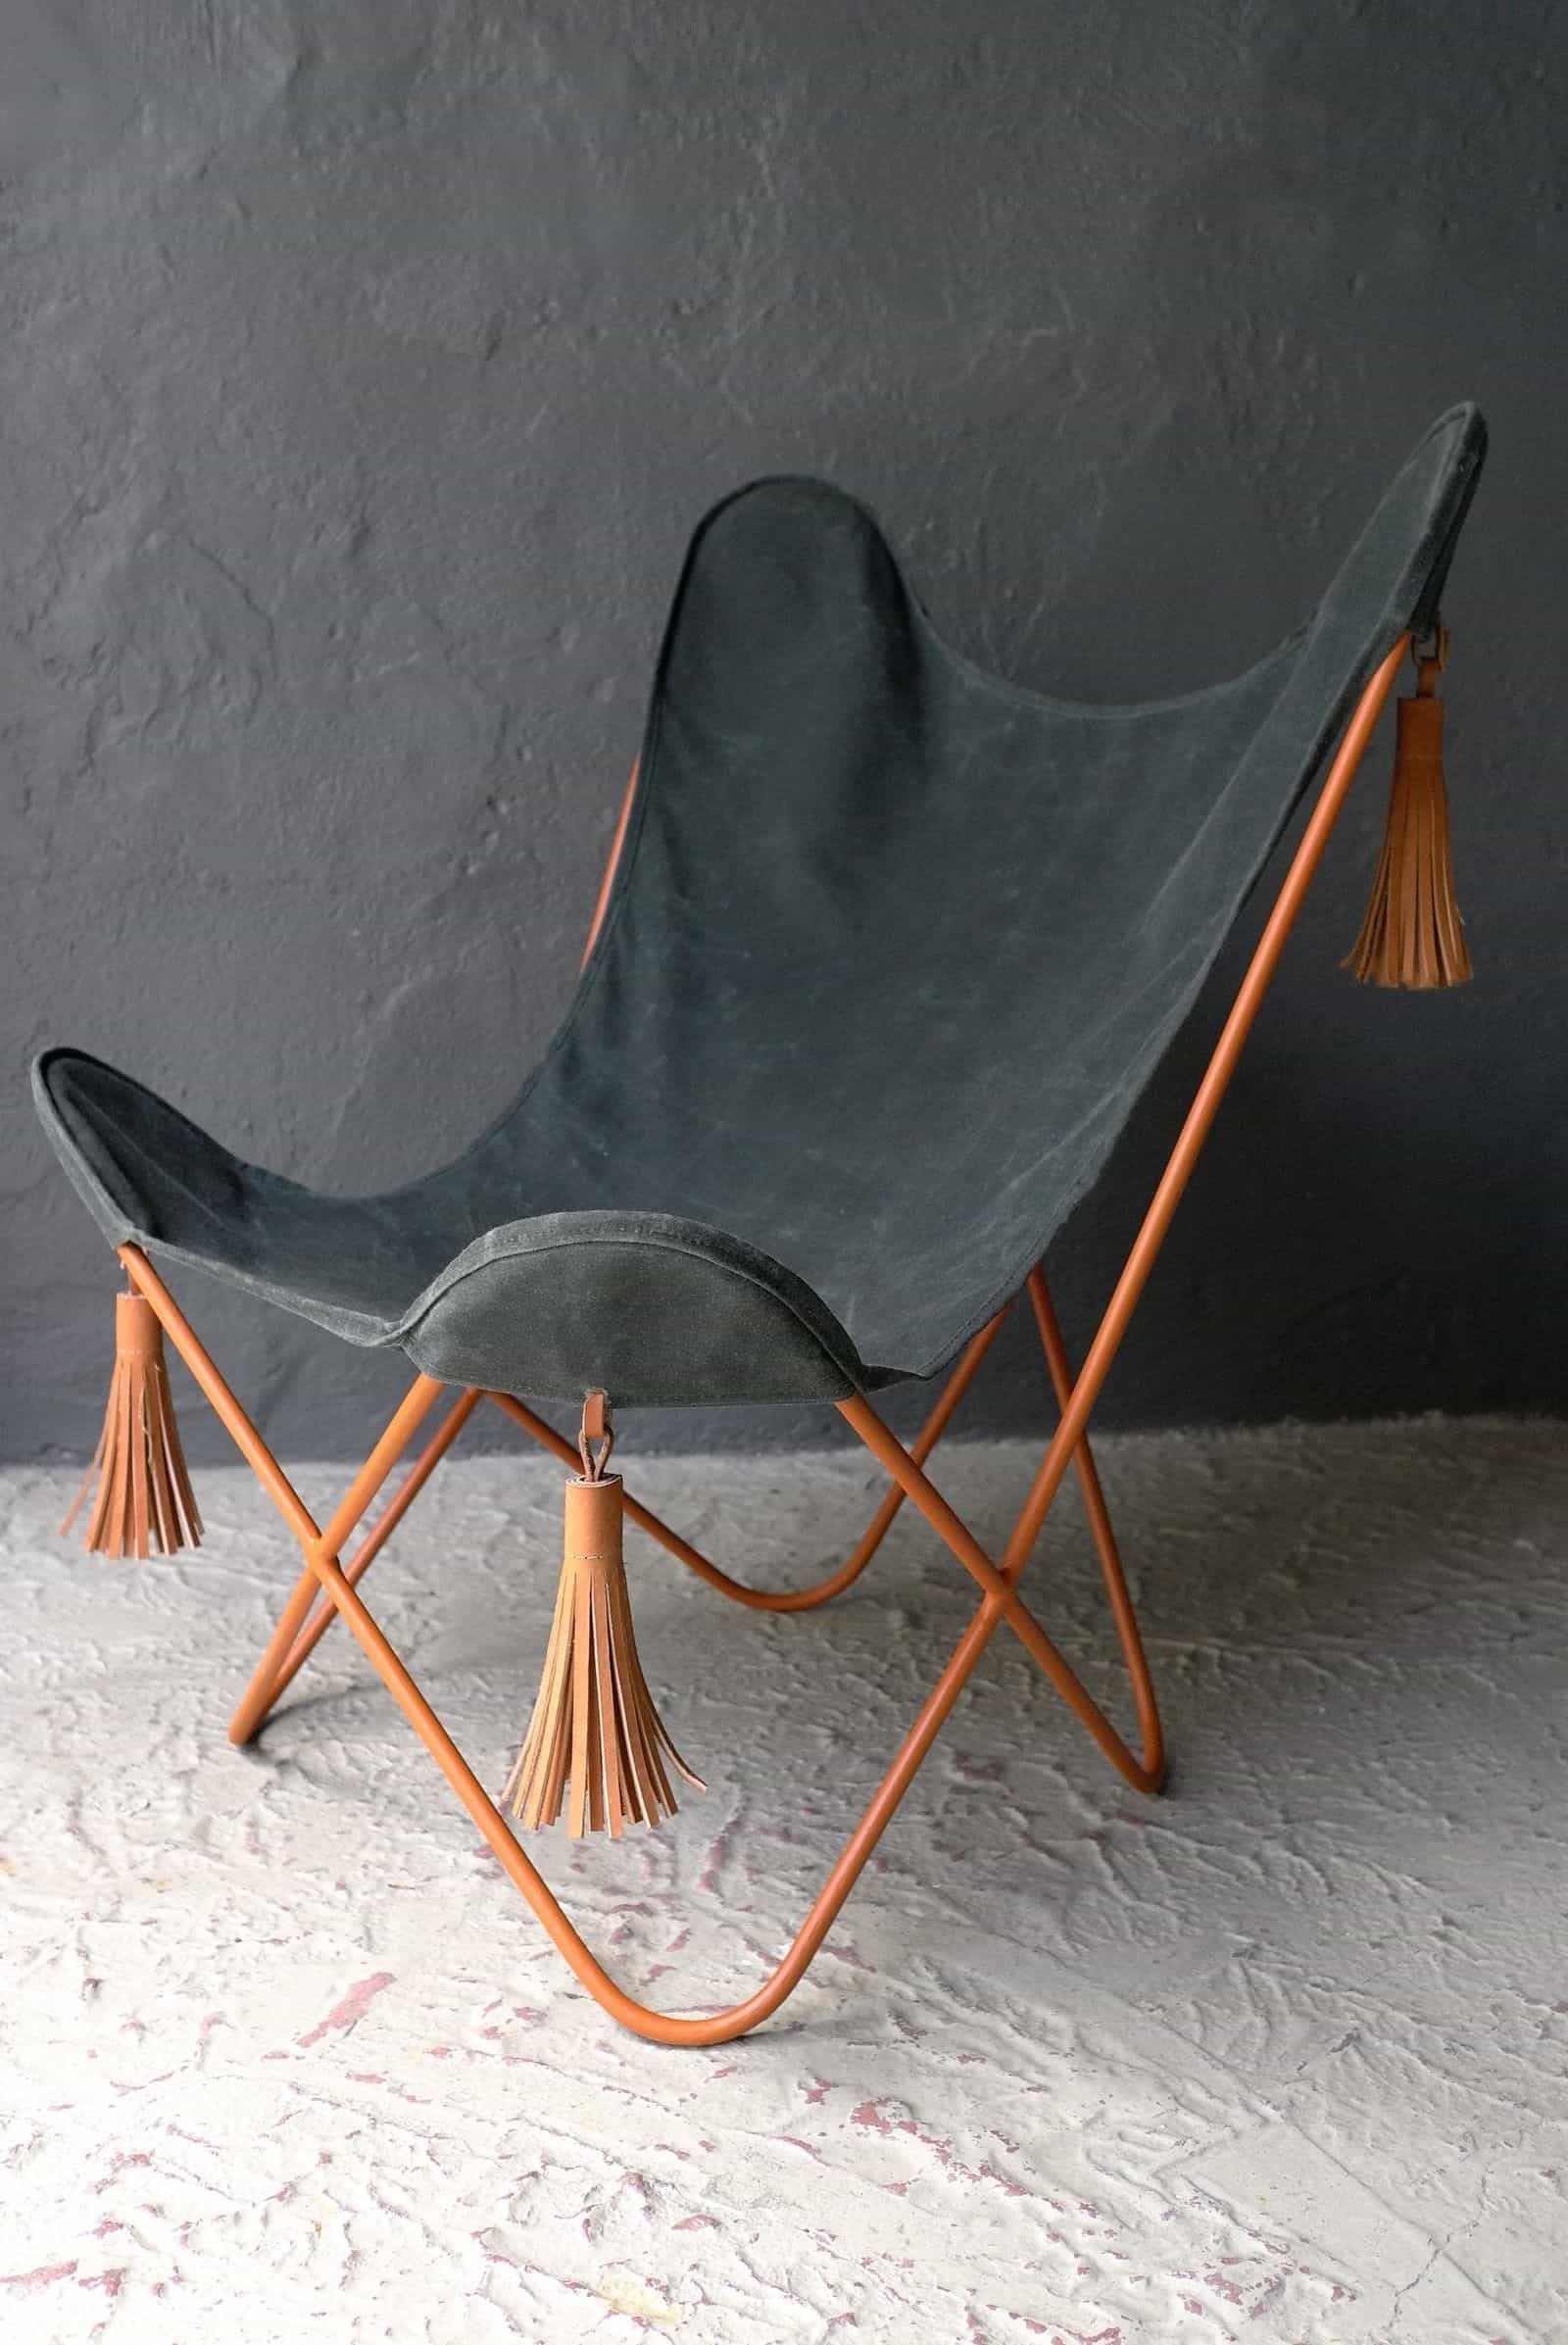 A WAXED CANVAS CHAIR WITH LEATHER TASSELS